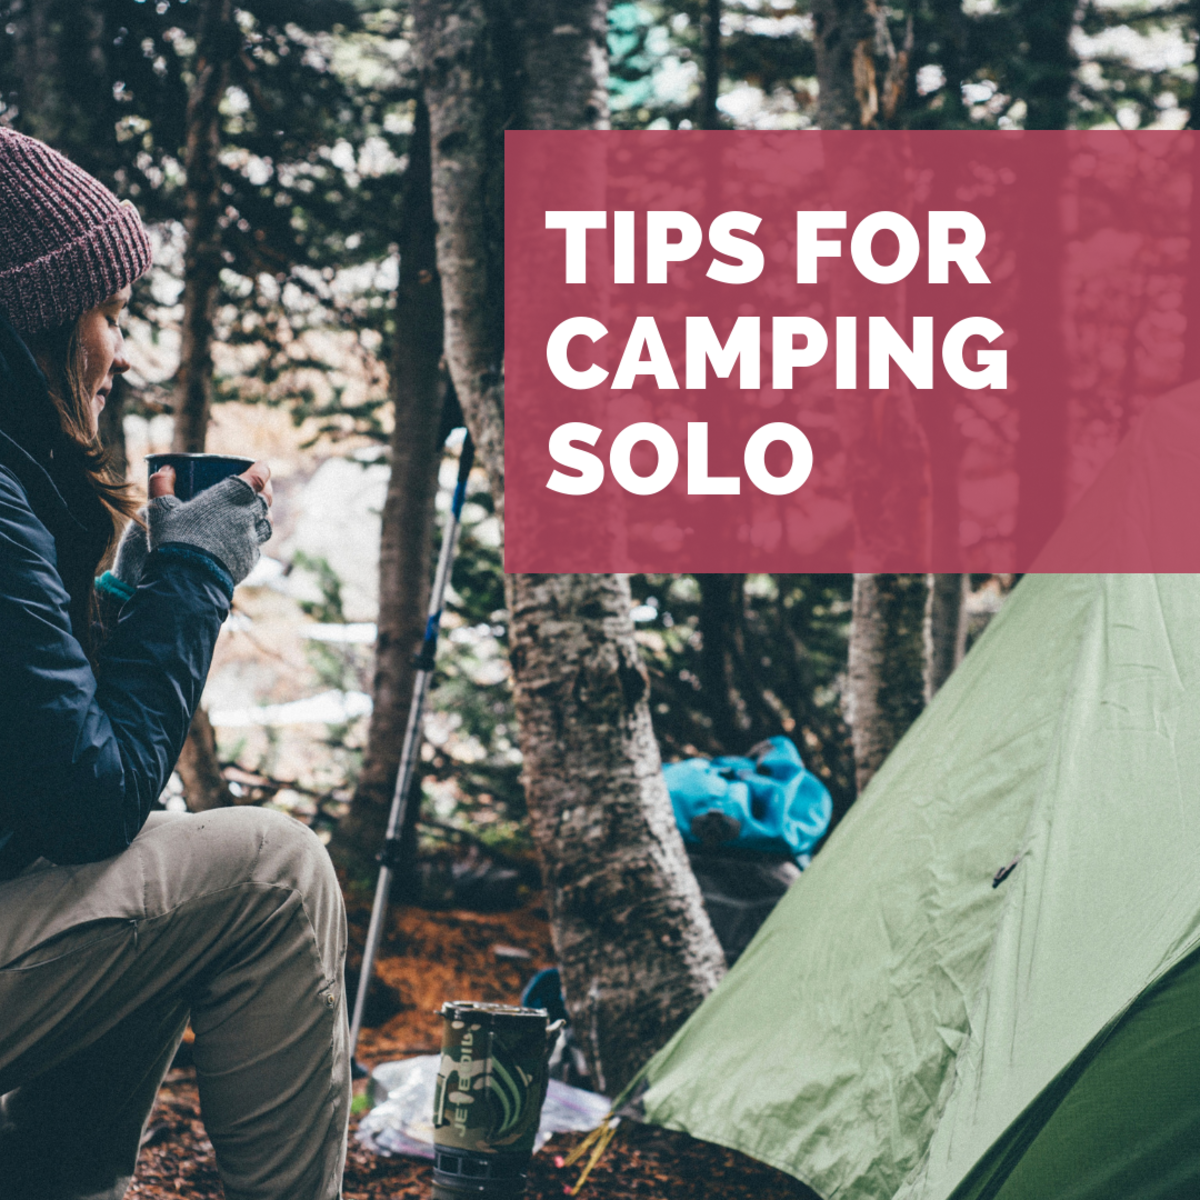 First Time Camping Solo? Tips for Women Camping Alone